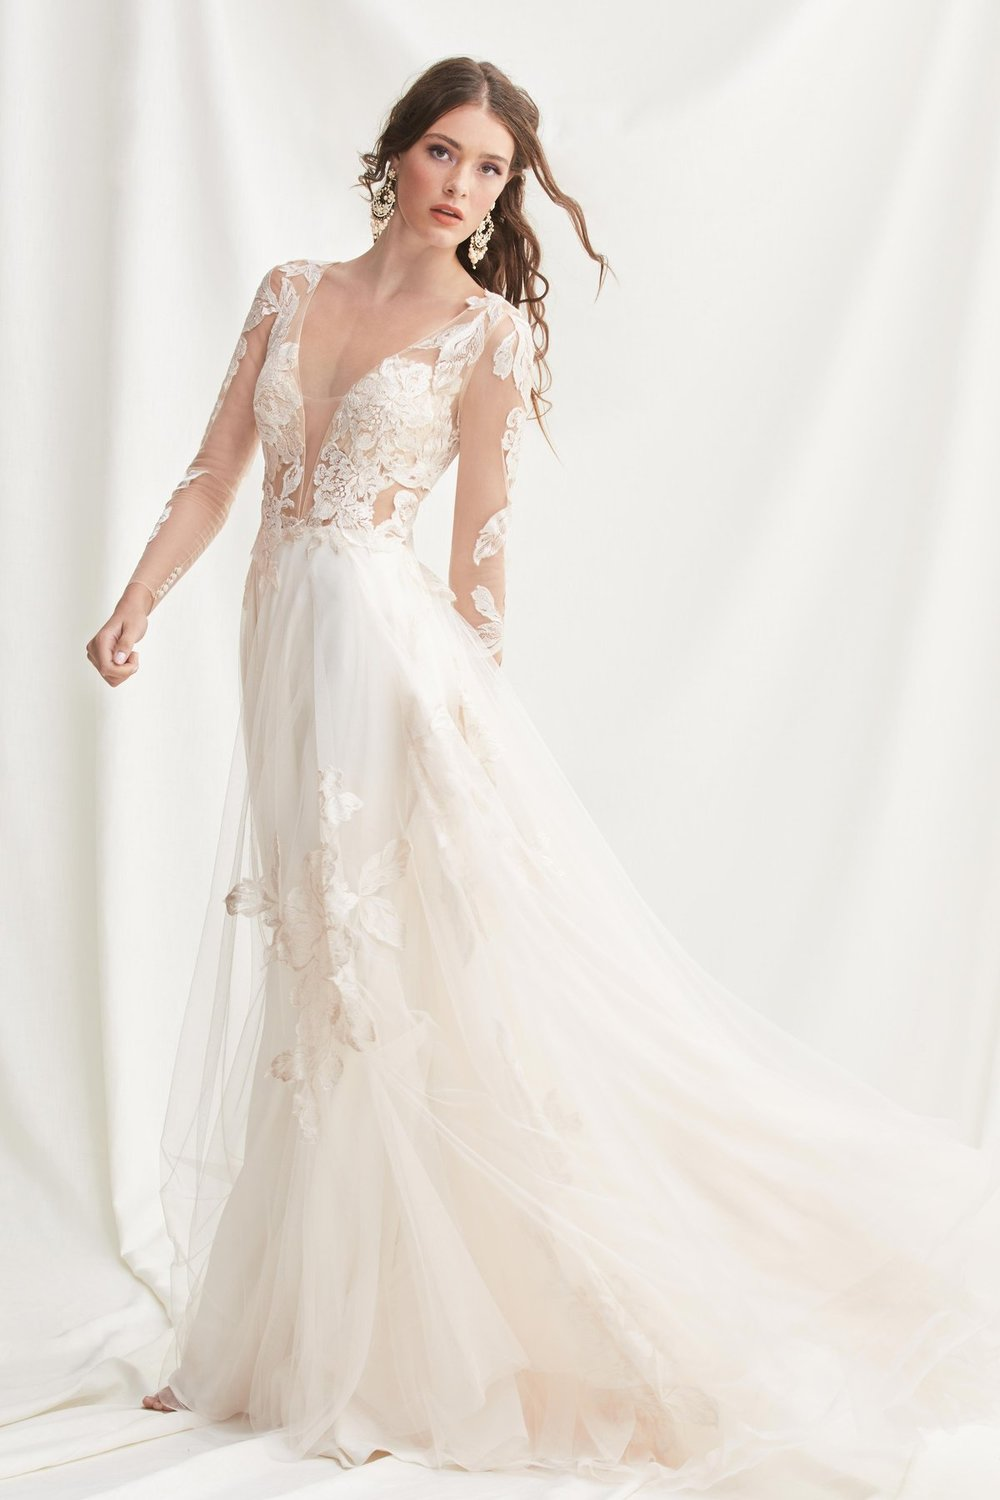 Available at Bride To Be Couture - Inventory# 02629